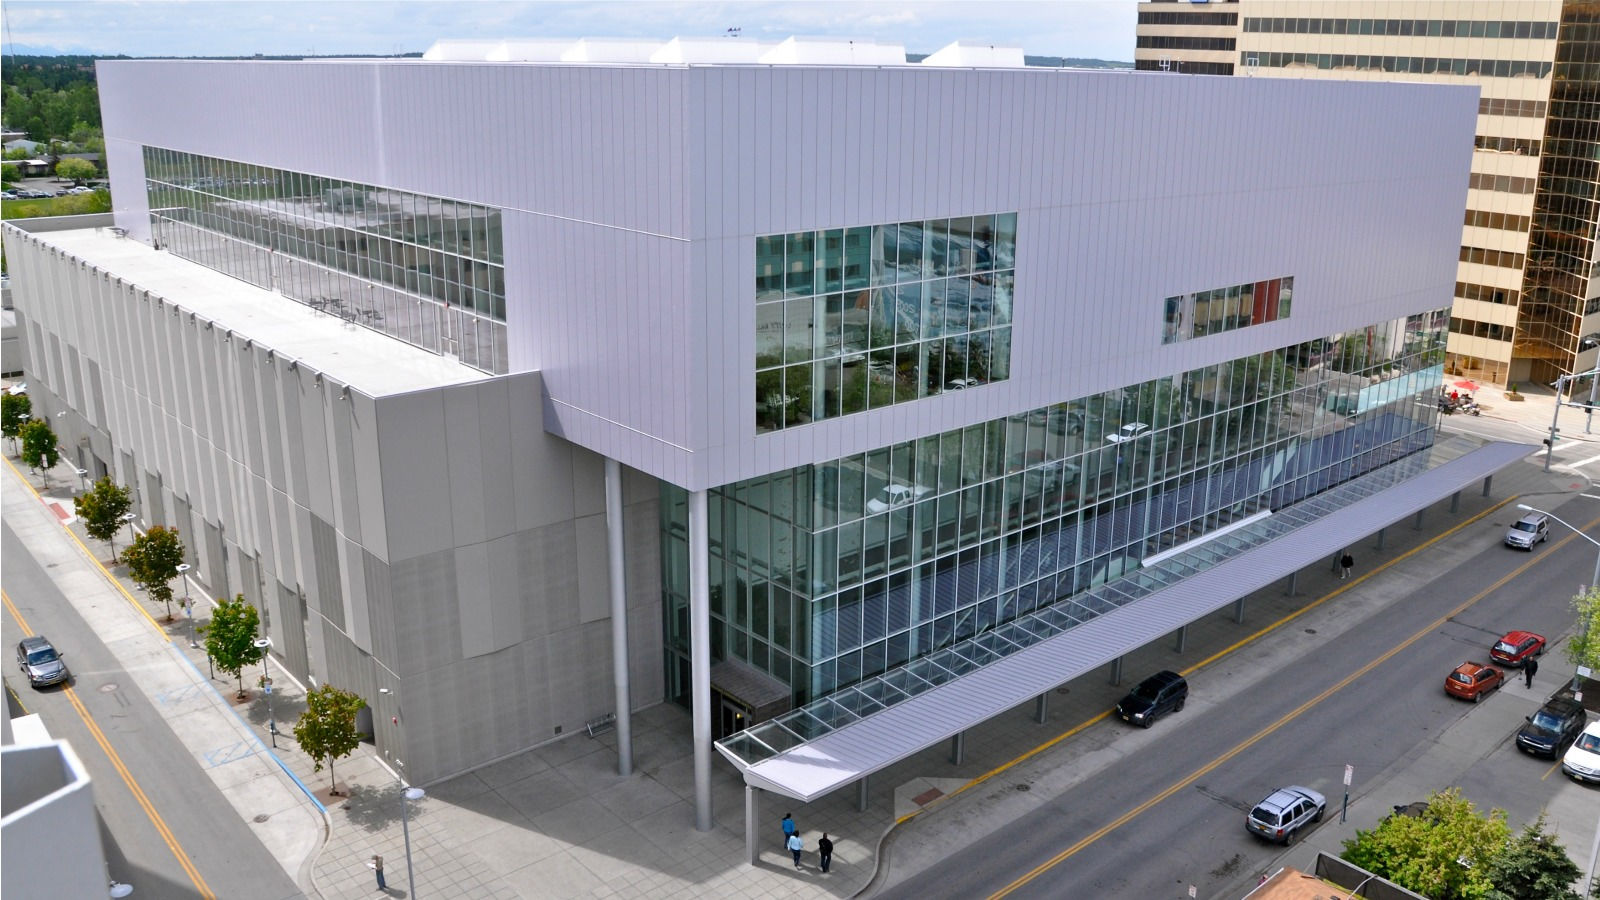 Things to do in Anchorage - Dena'ina Civic Convention Center